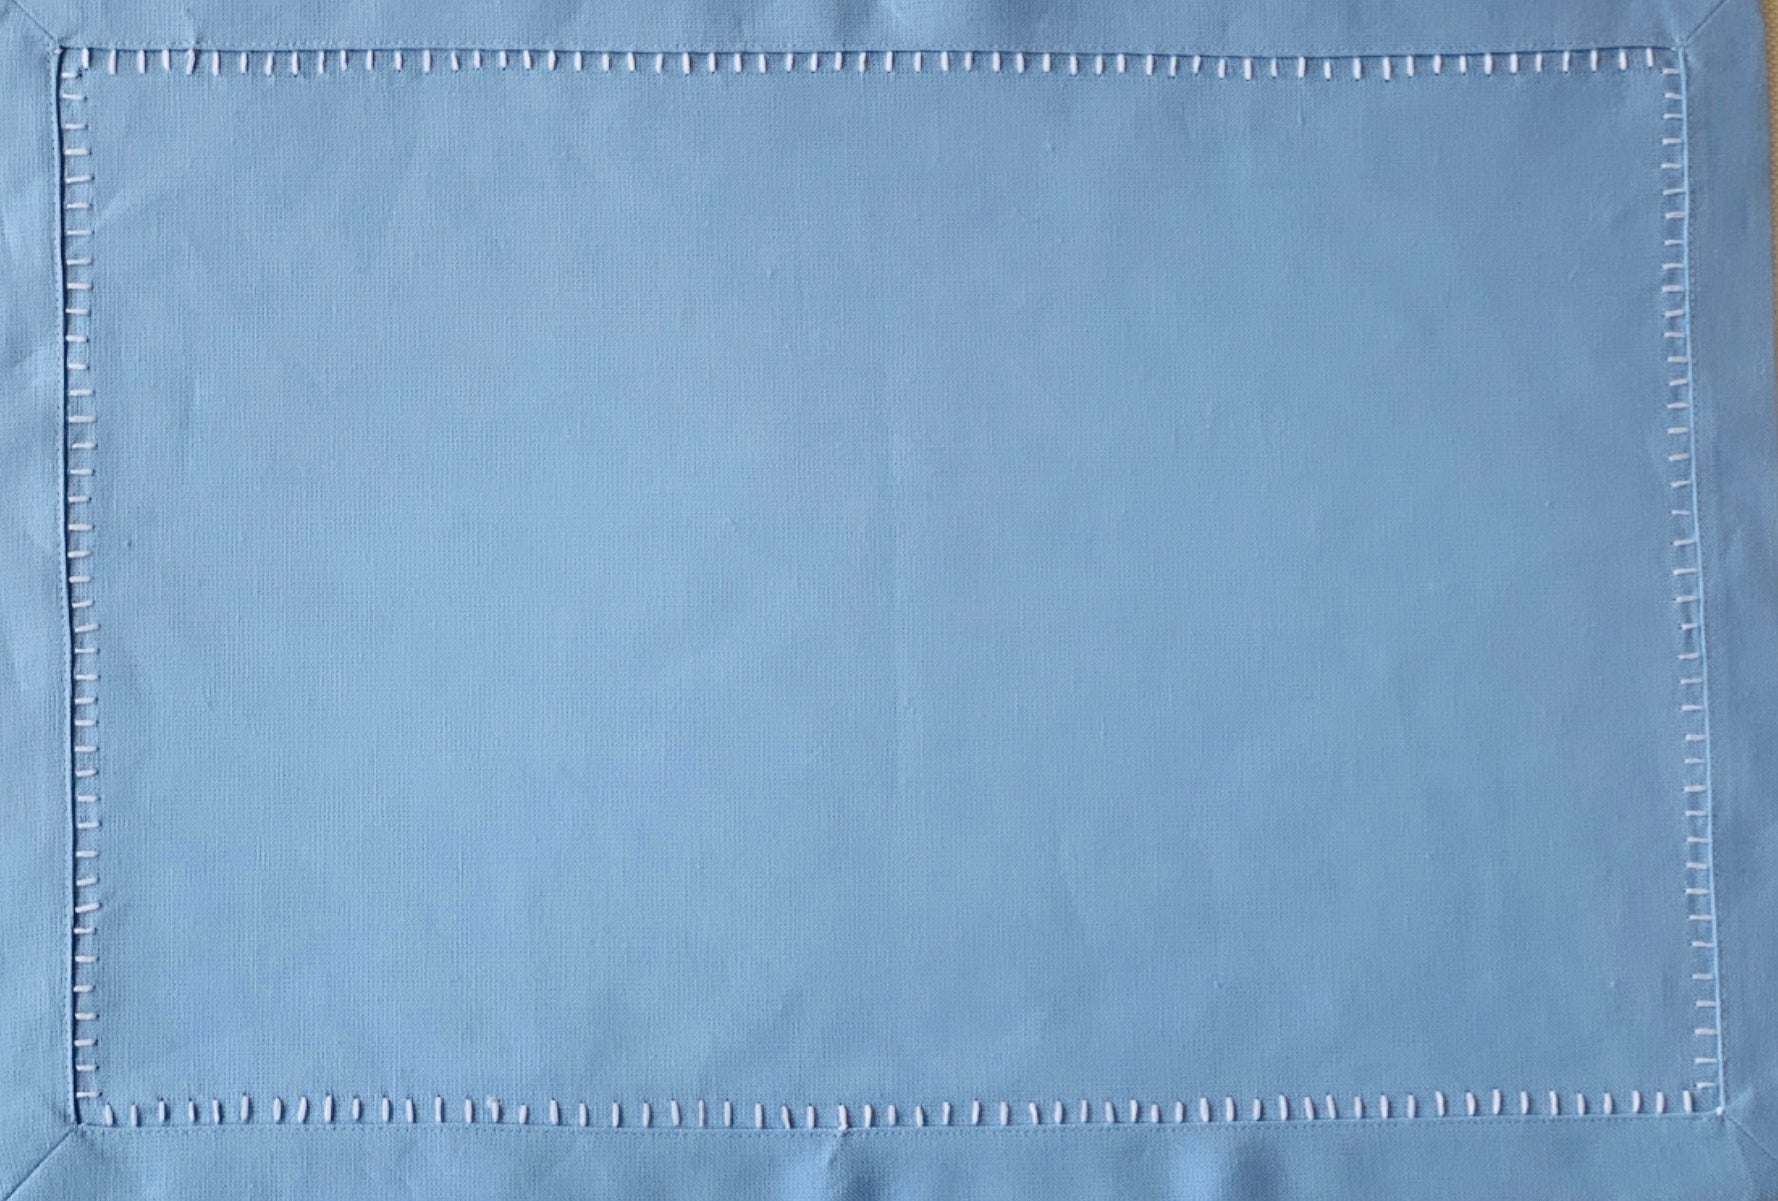 Blue and White Hemstitch Placemat